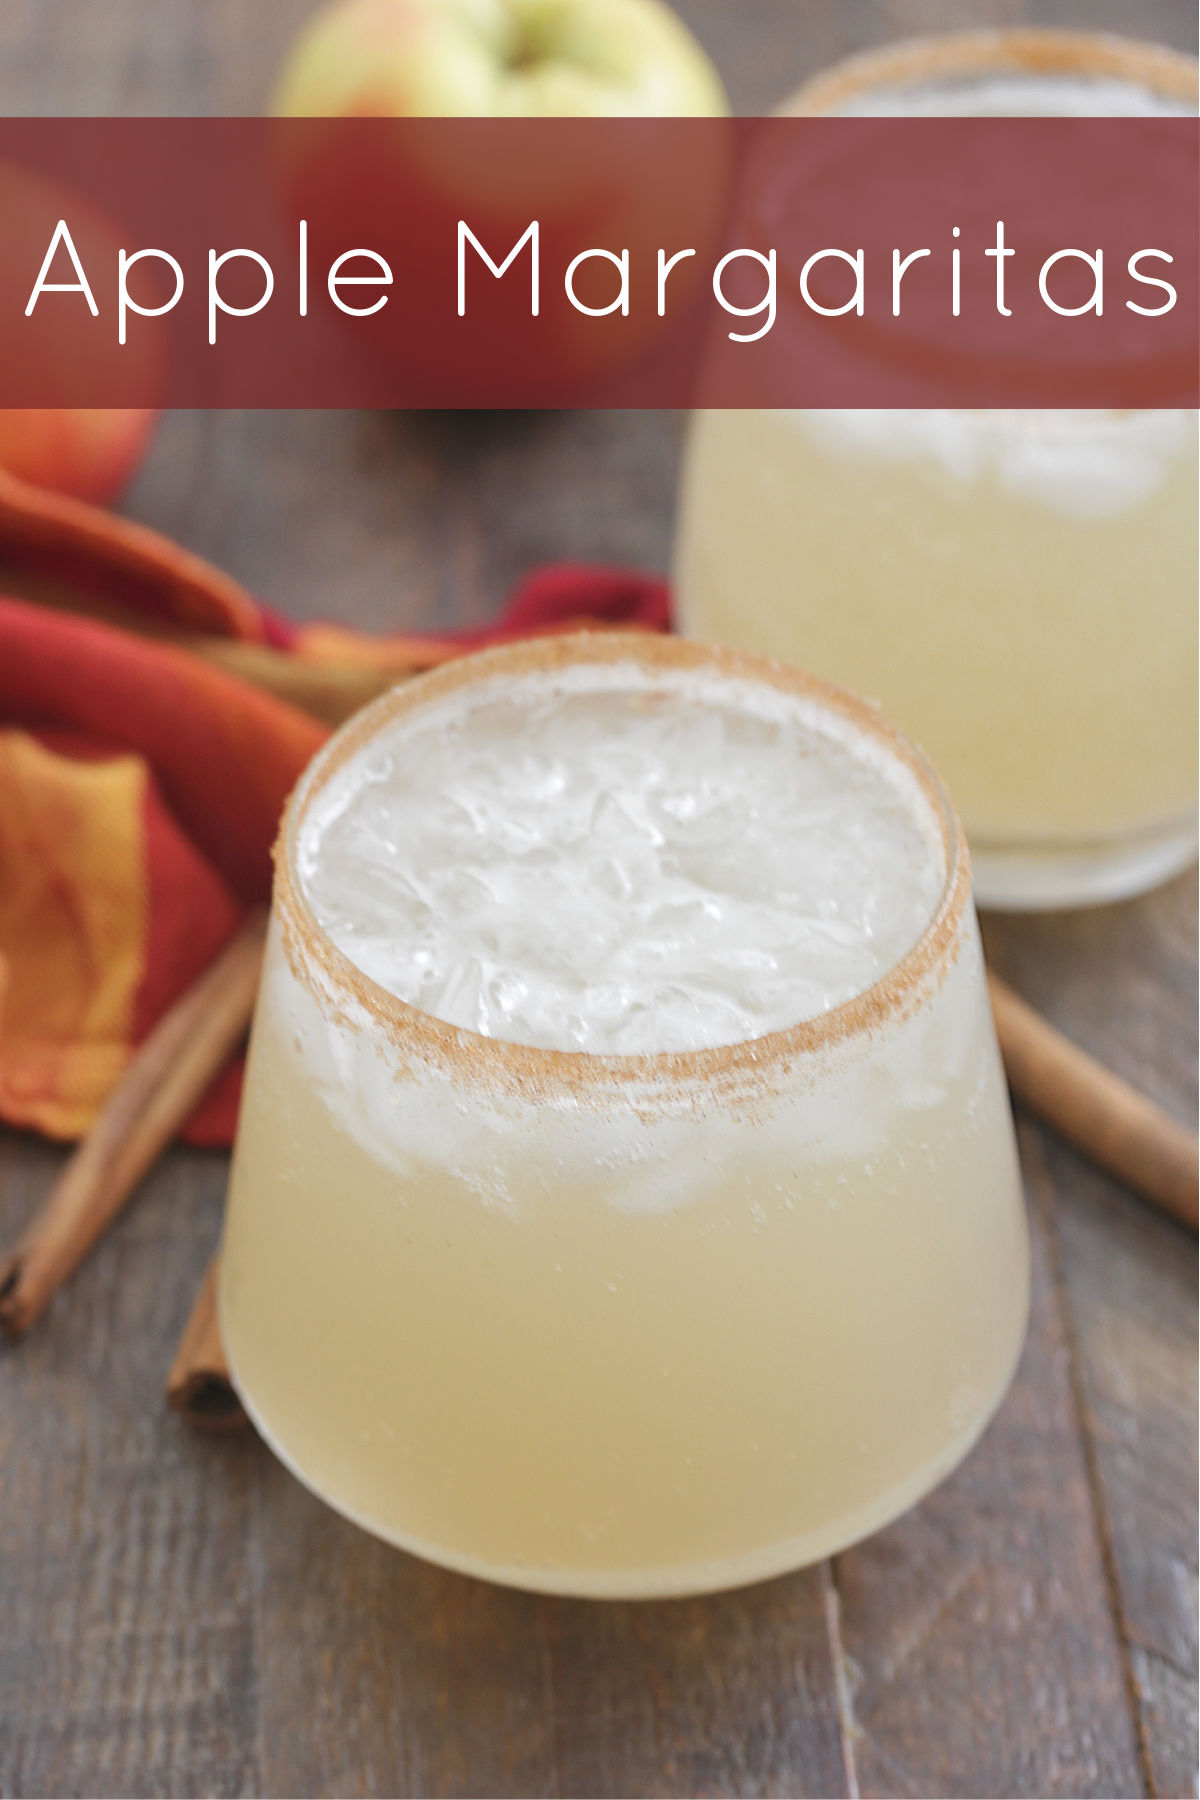 Apple Margaritas in a glass with a cinnamon sugar rim and apples